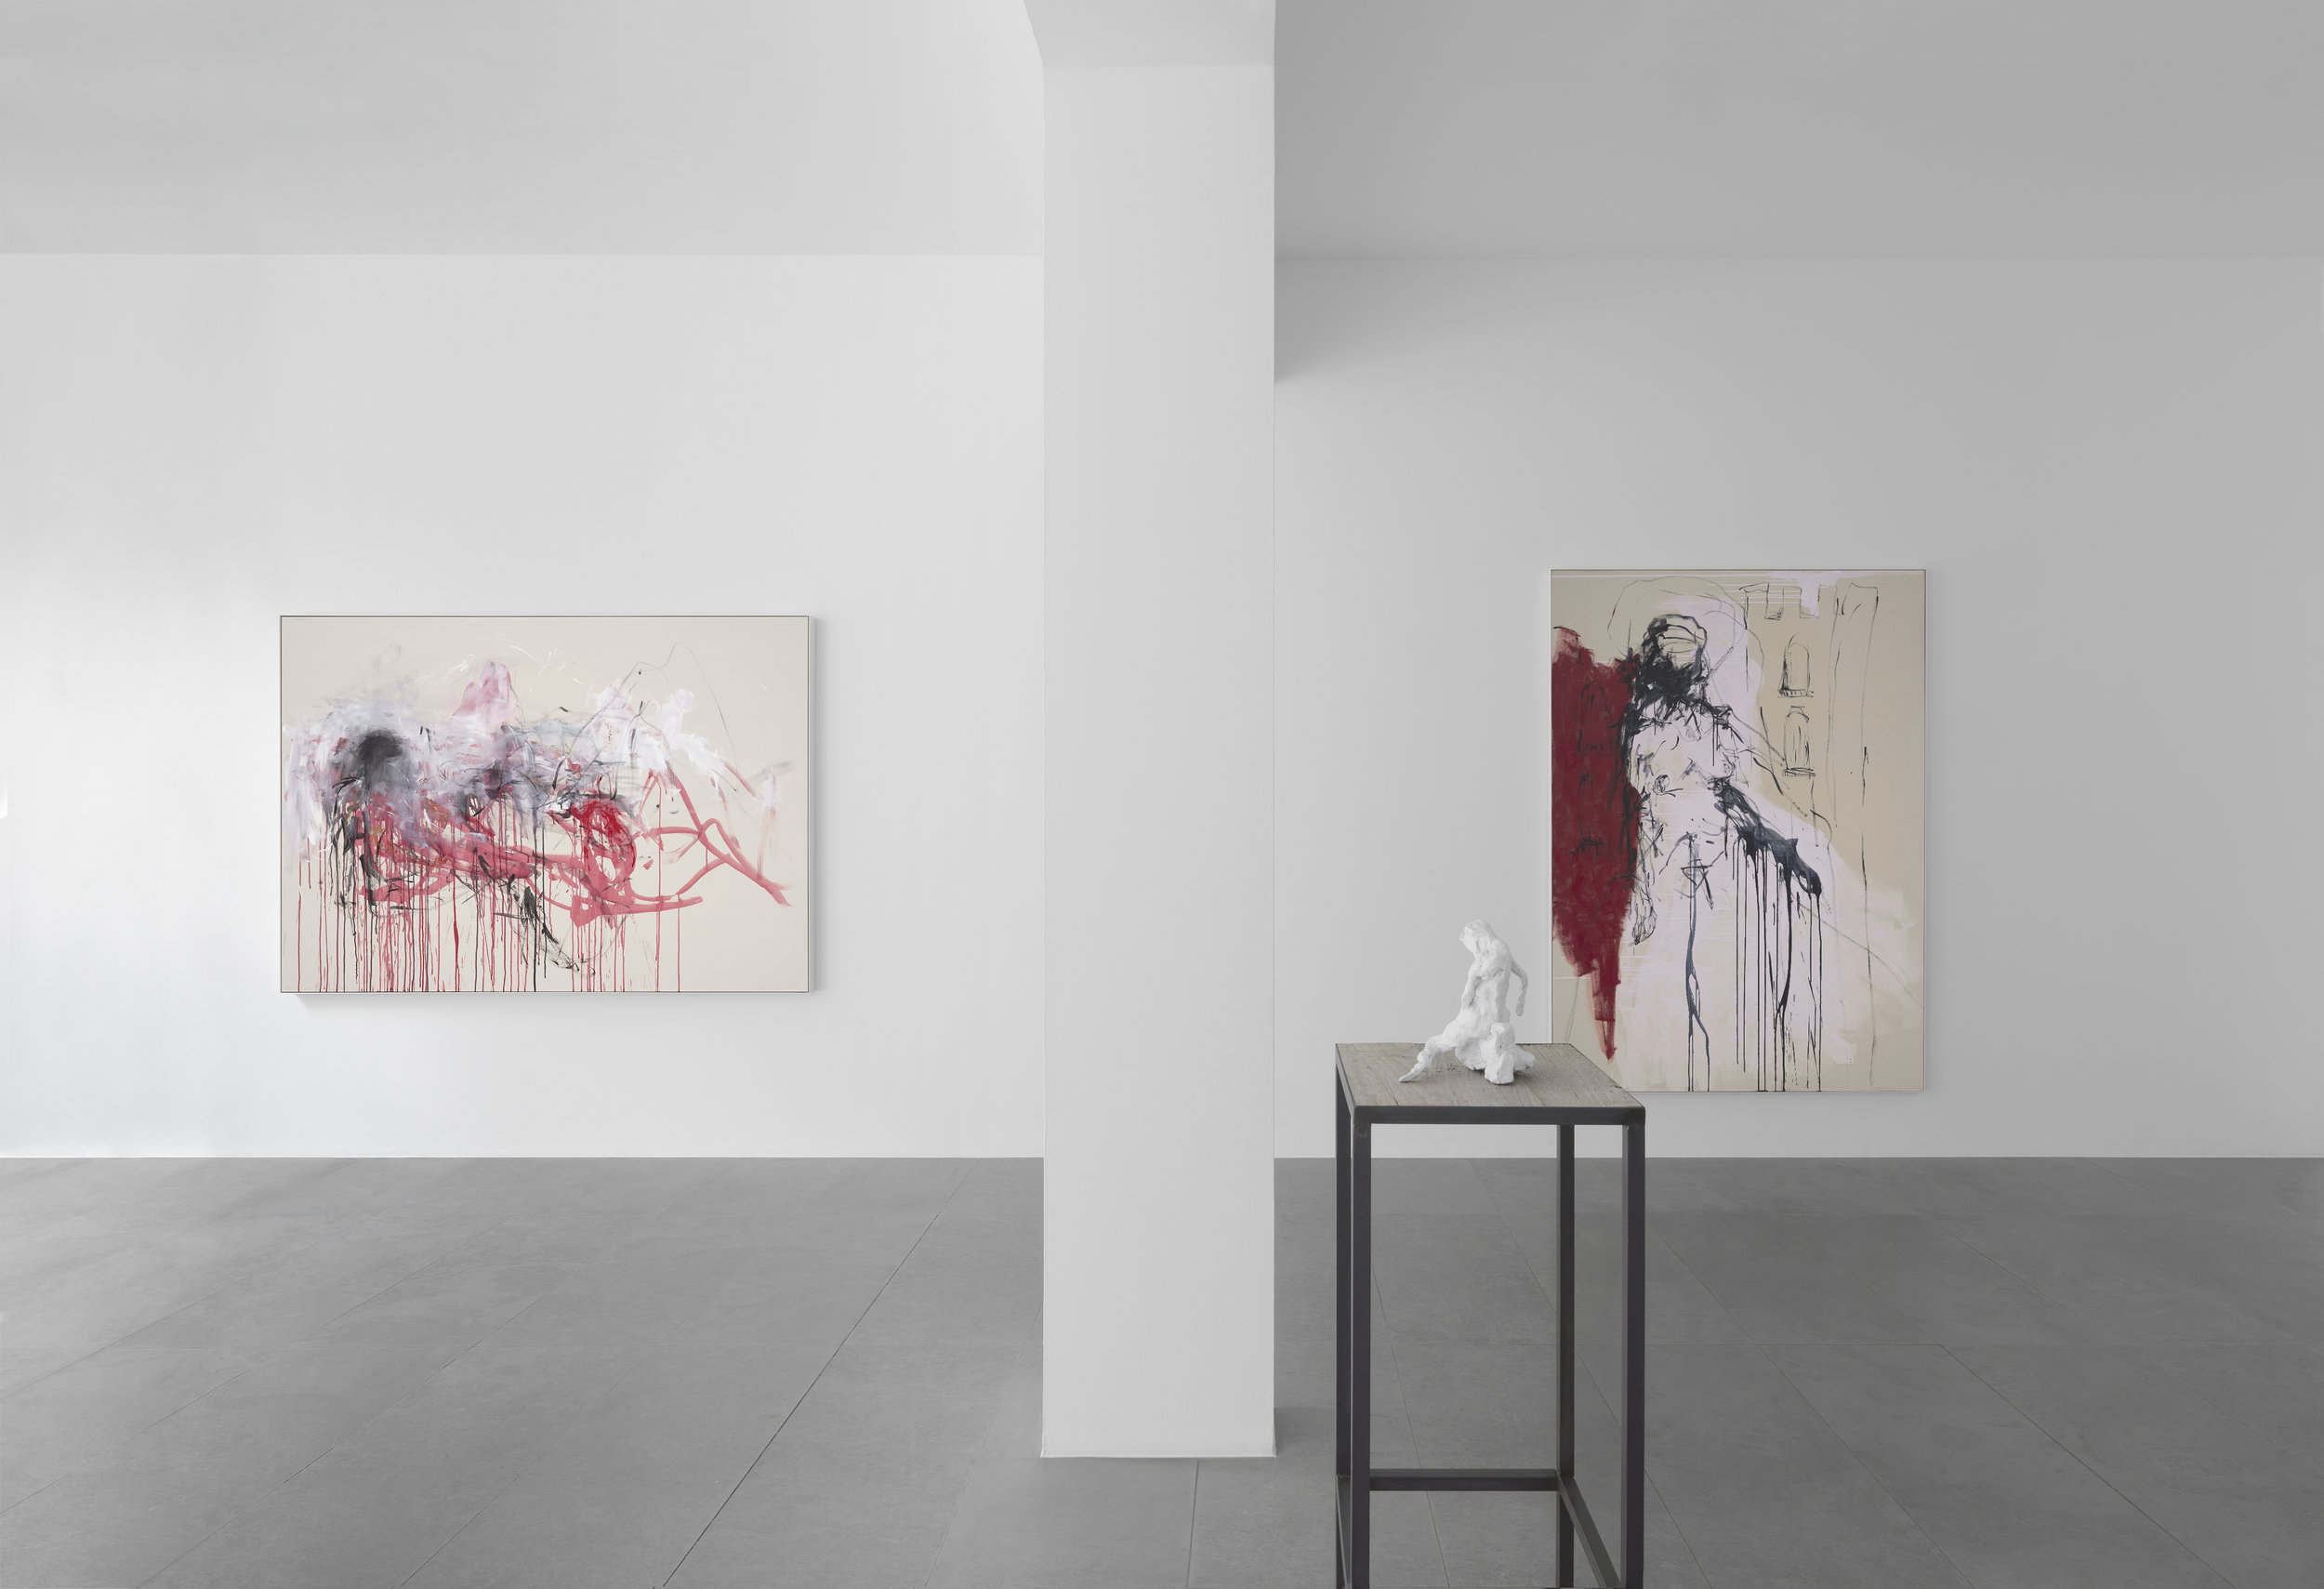 Tracey Emin, 'The Memory of Your Touch', Galerie Xavier Hufkens, vue d'exposition.Photo-credit: Allard Bovenberg, Amsterdam.Courtesy the Artist and galerie Xavier Hufkens.